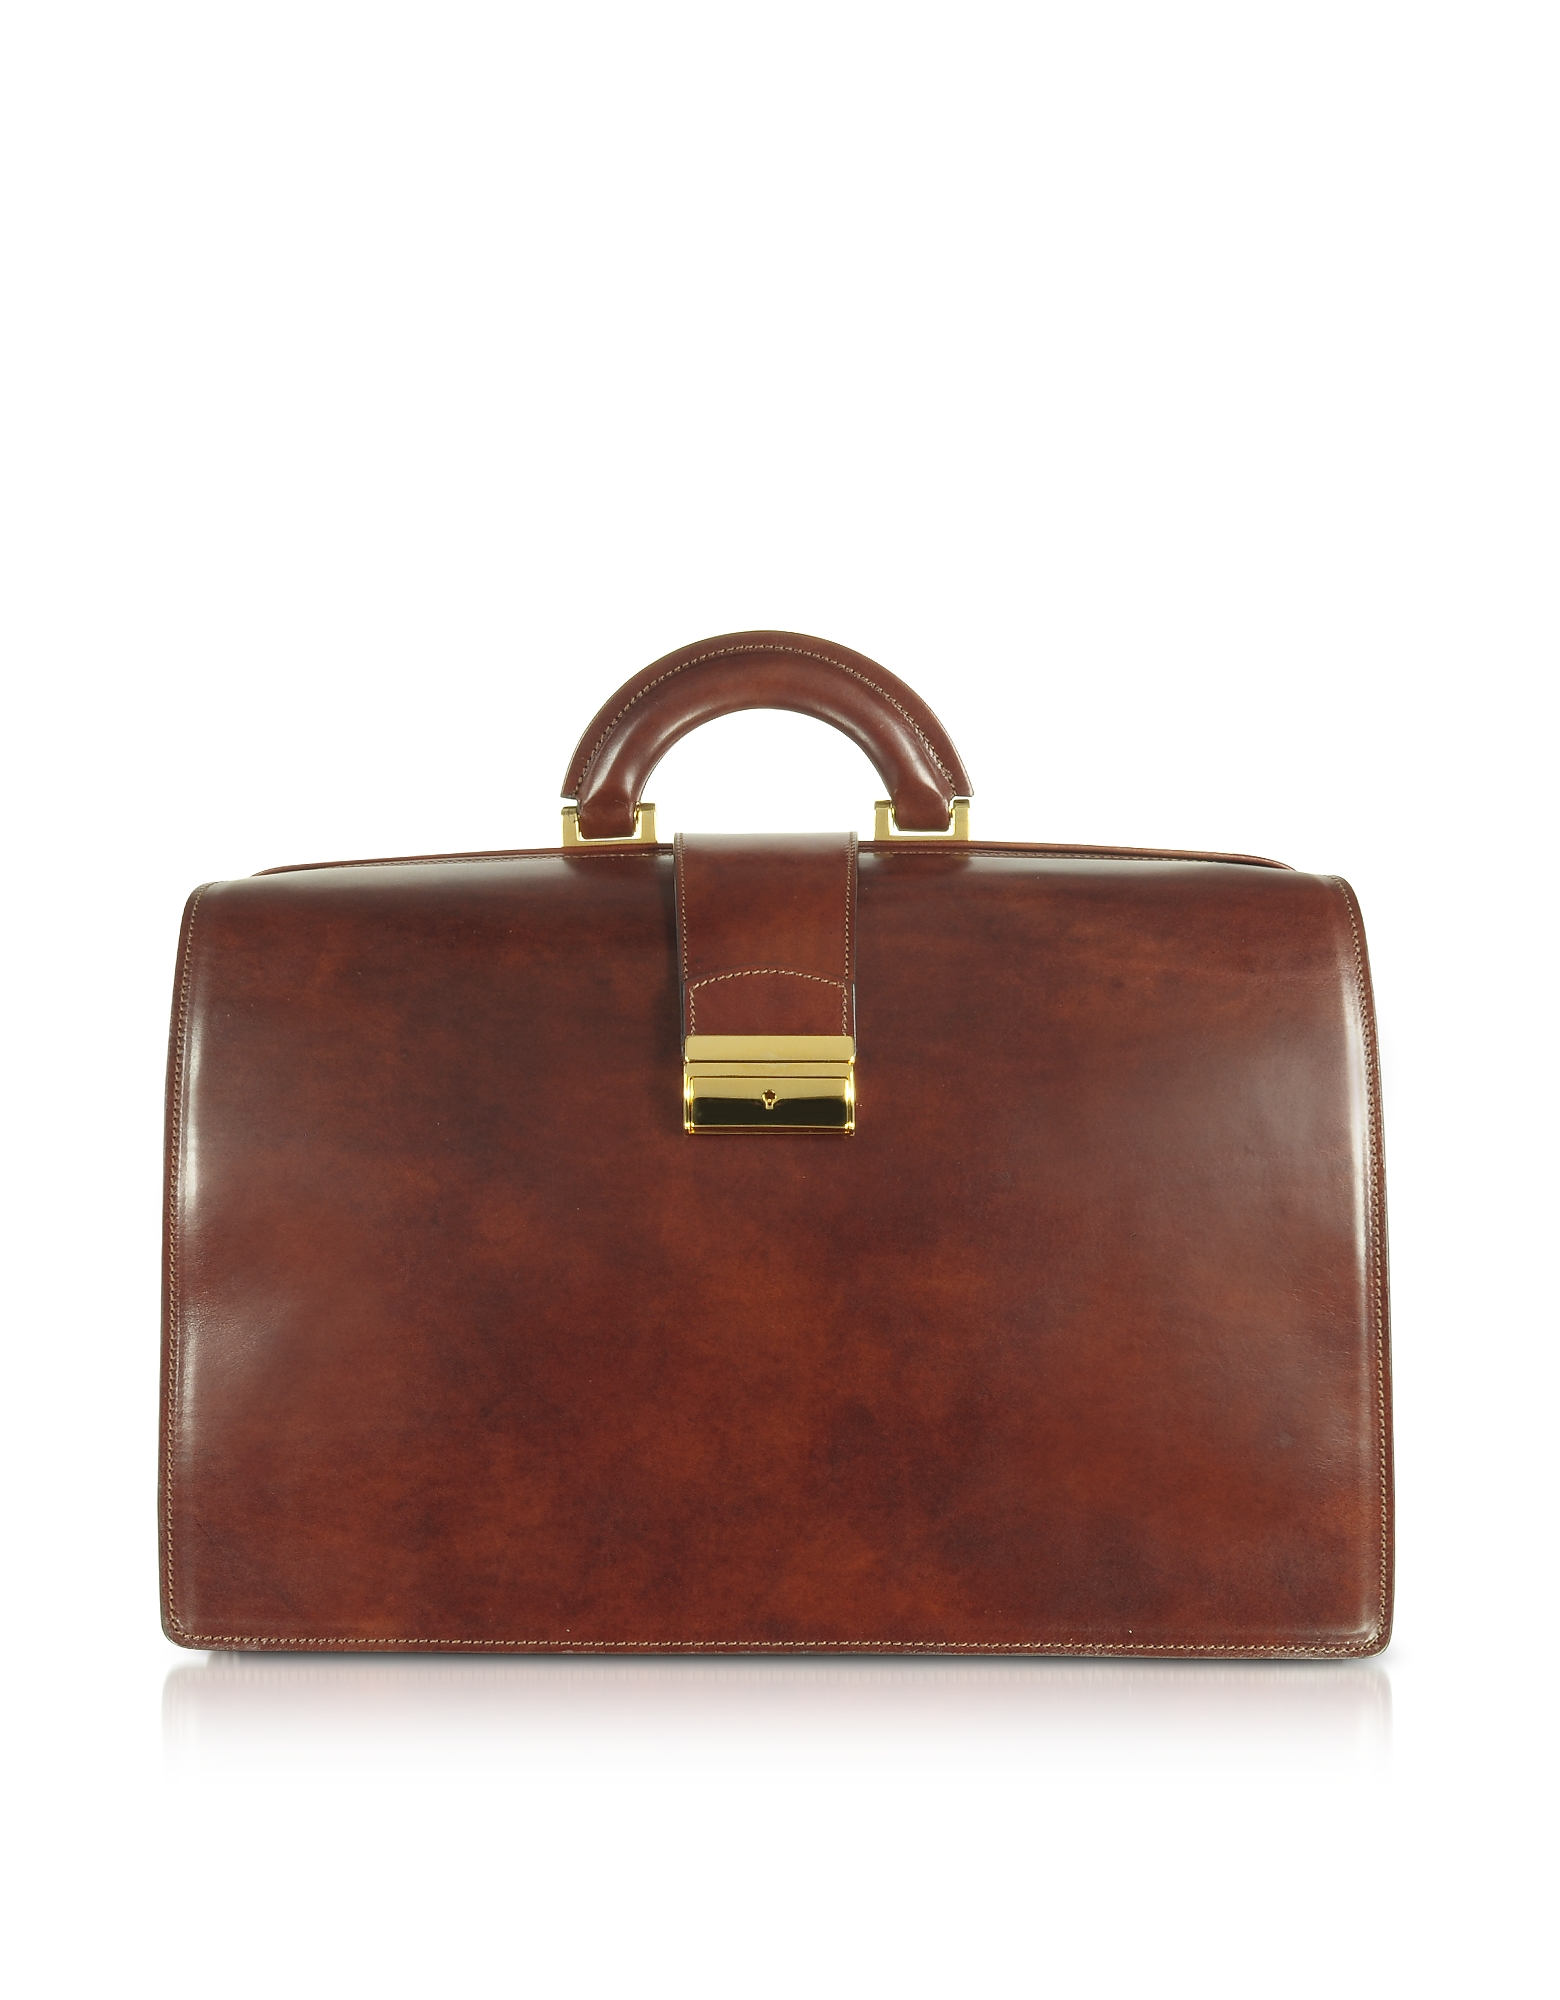 07684ca4c1 Shop online for Forzieri Briefcases